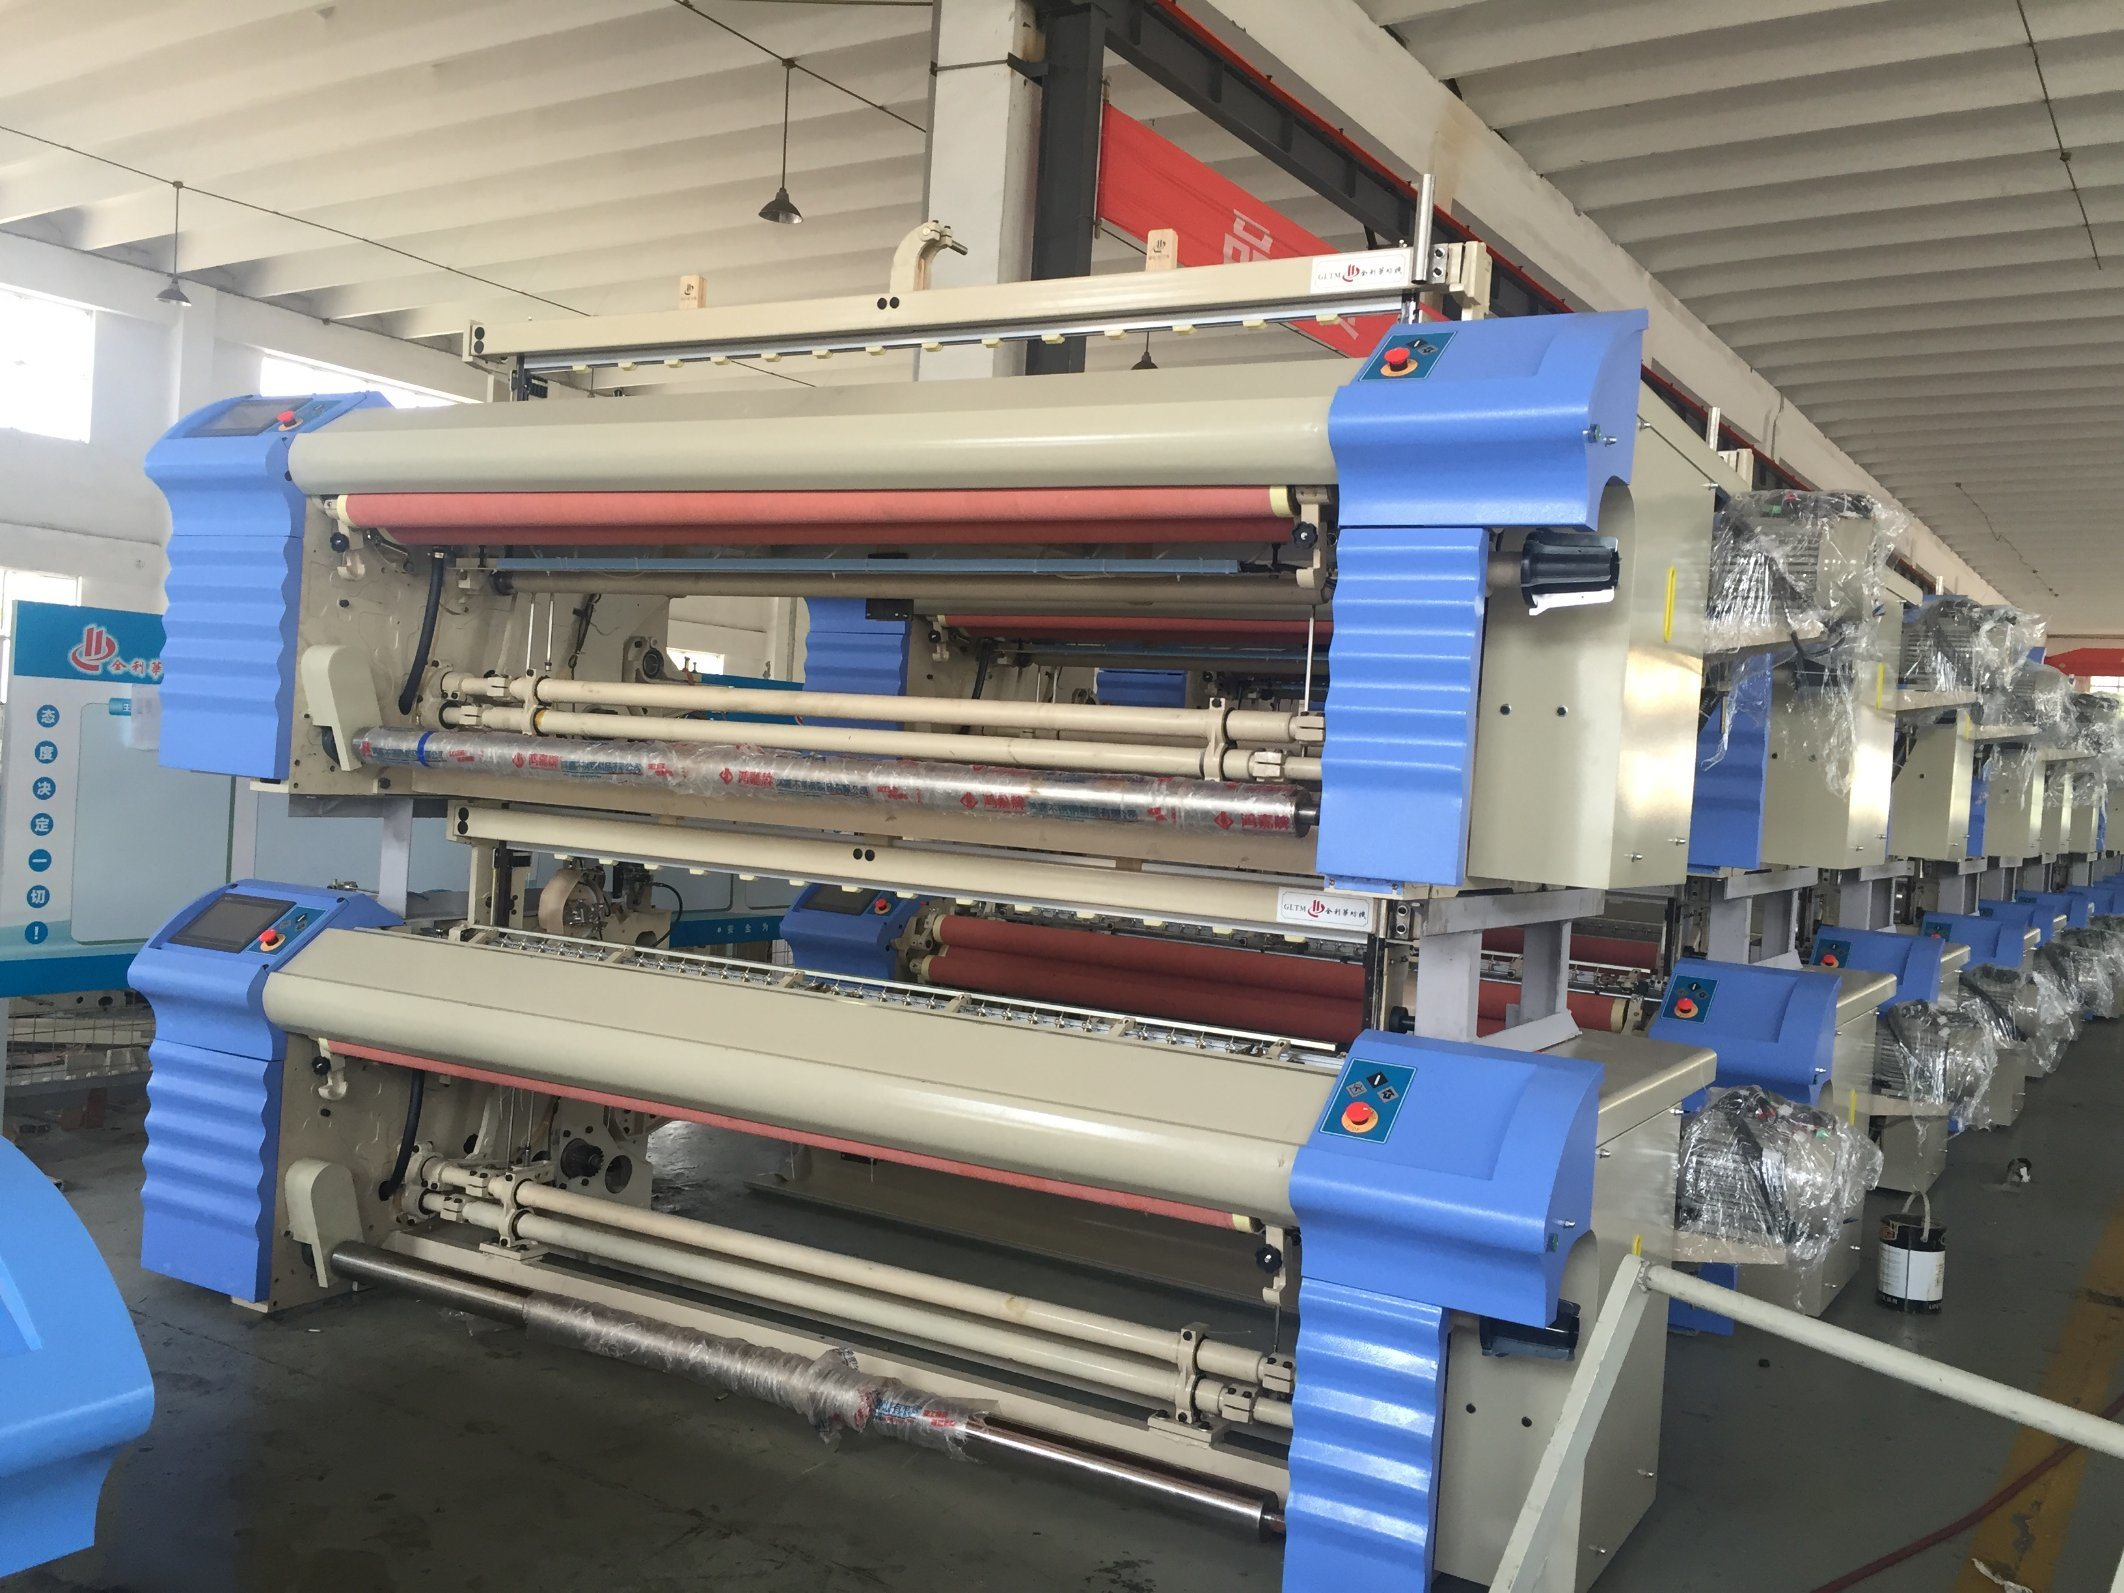 Cotton Fabric Weaving Loom Air Jet Loom Textile Machine Price